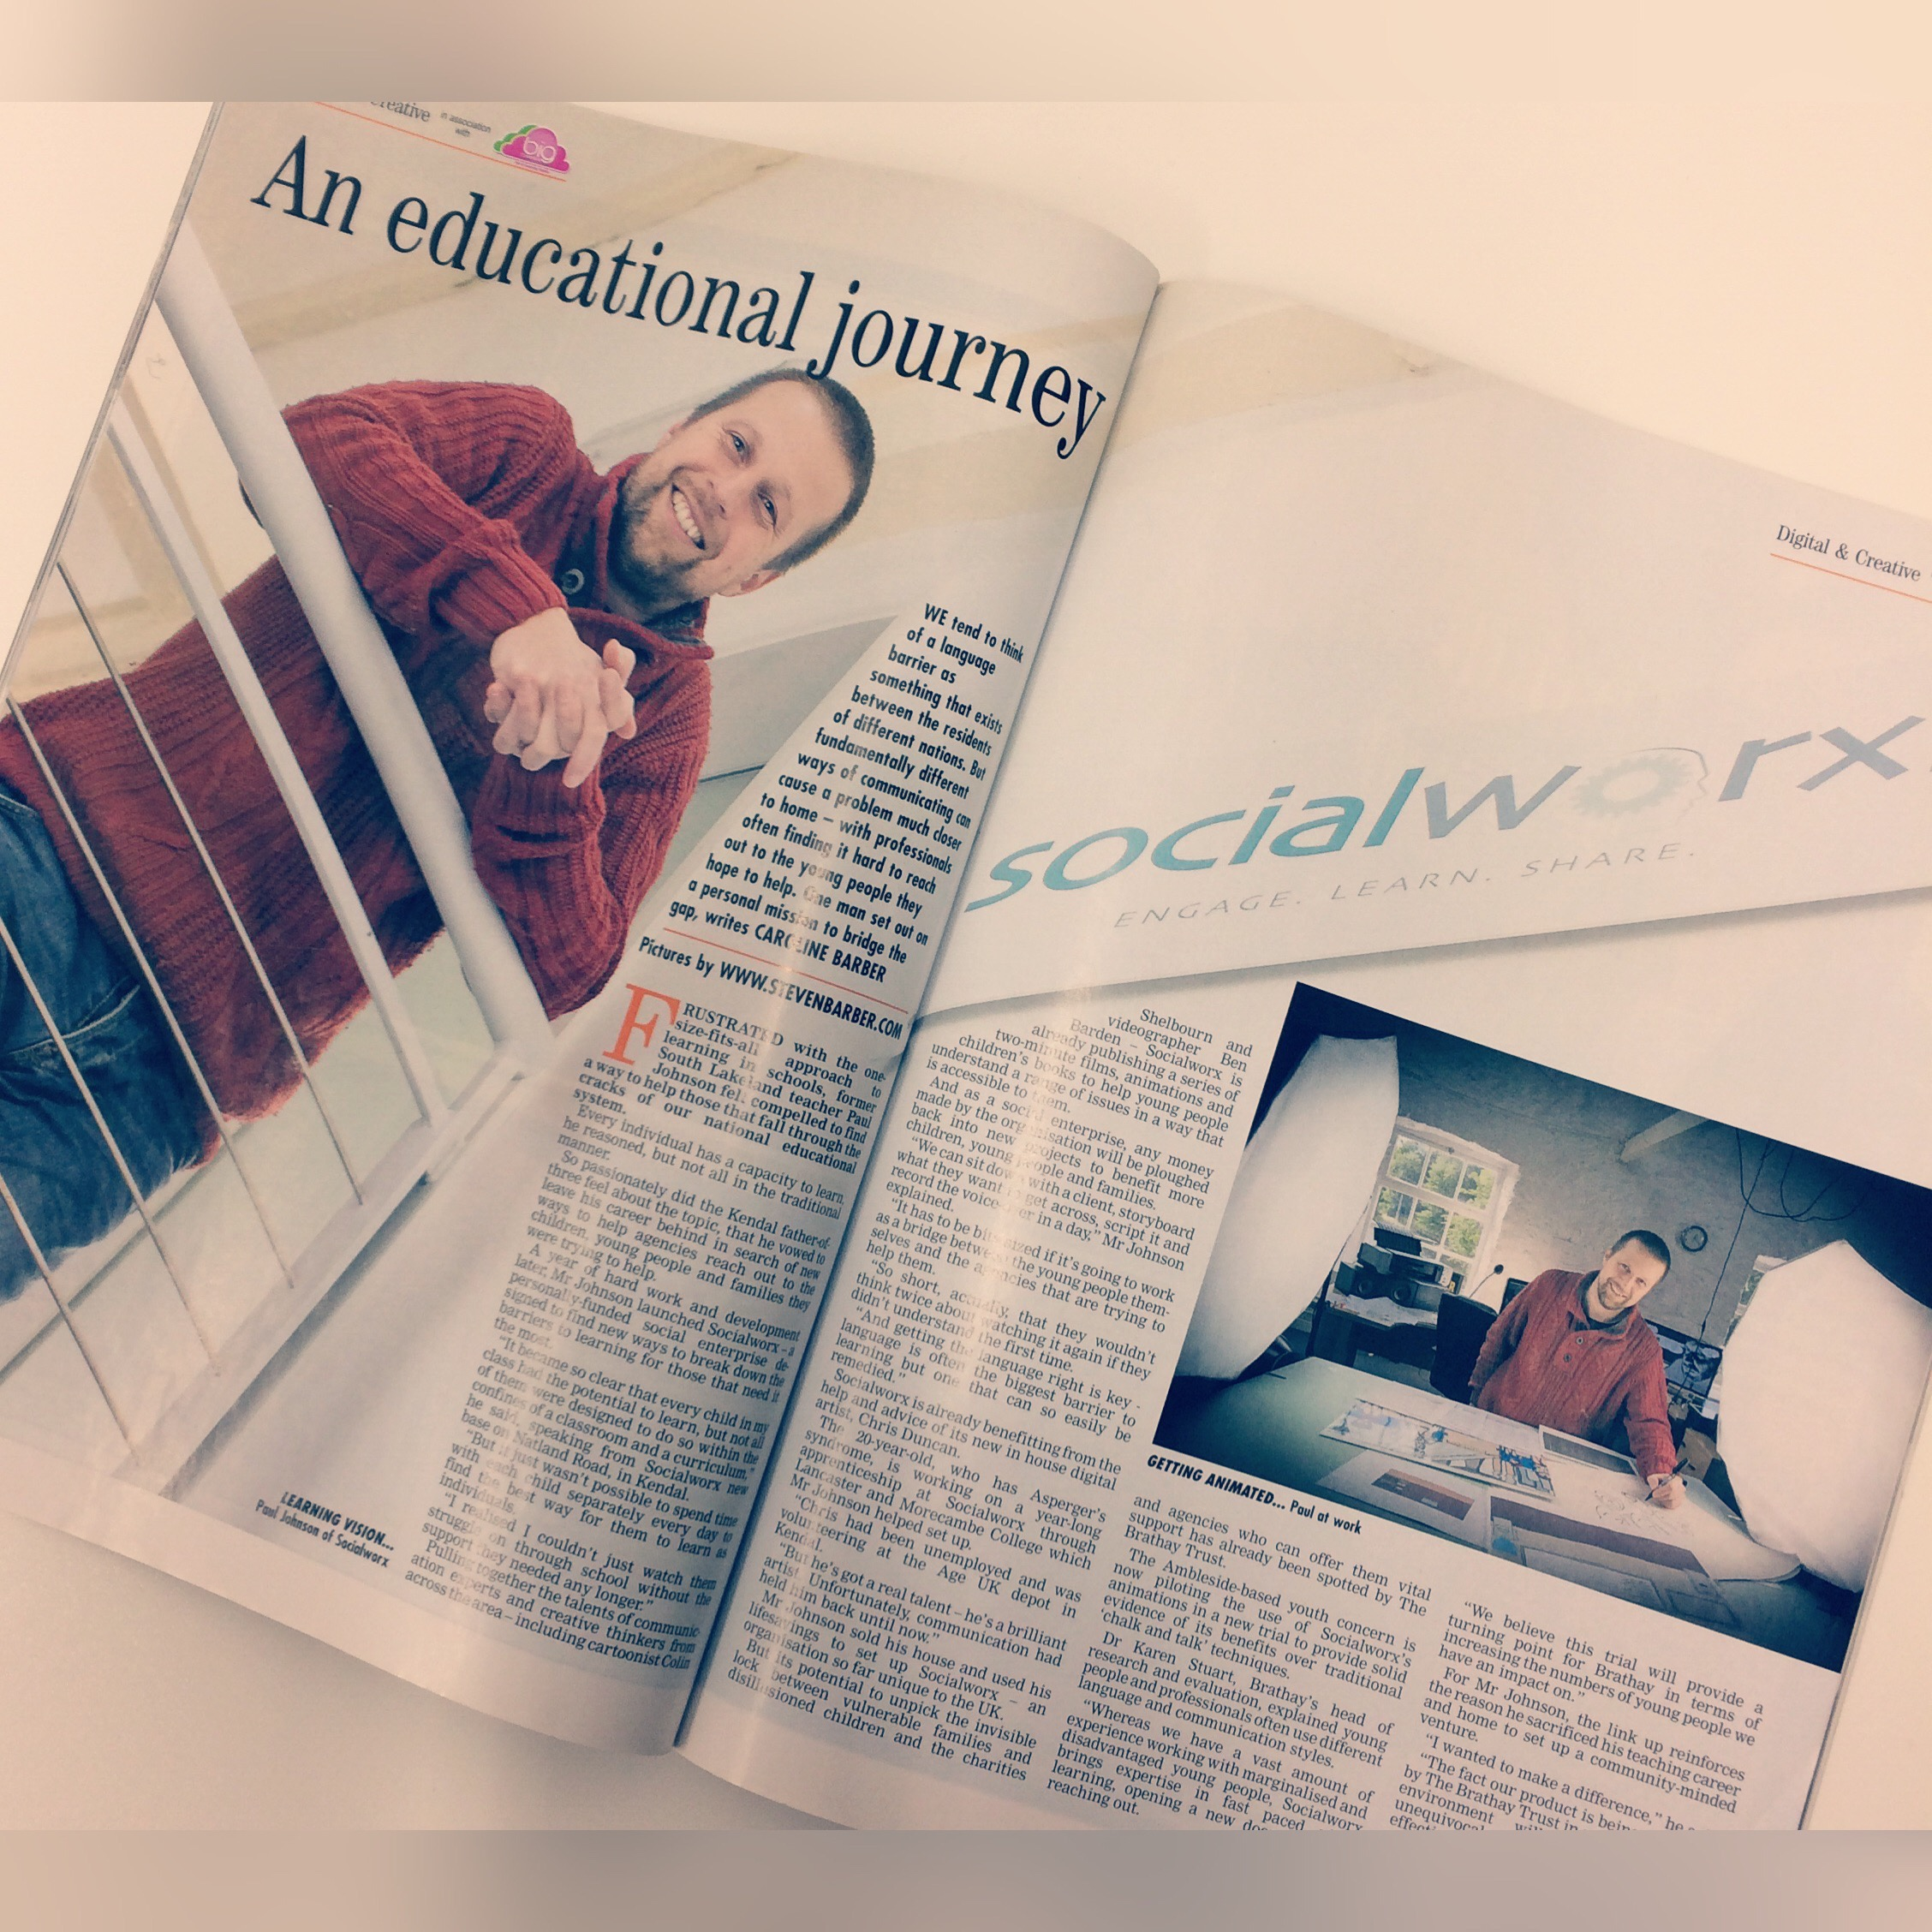 Paul Johnson and Socialworx featured within the In-Cumbria magazine